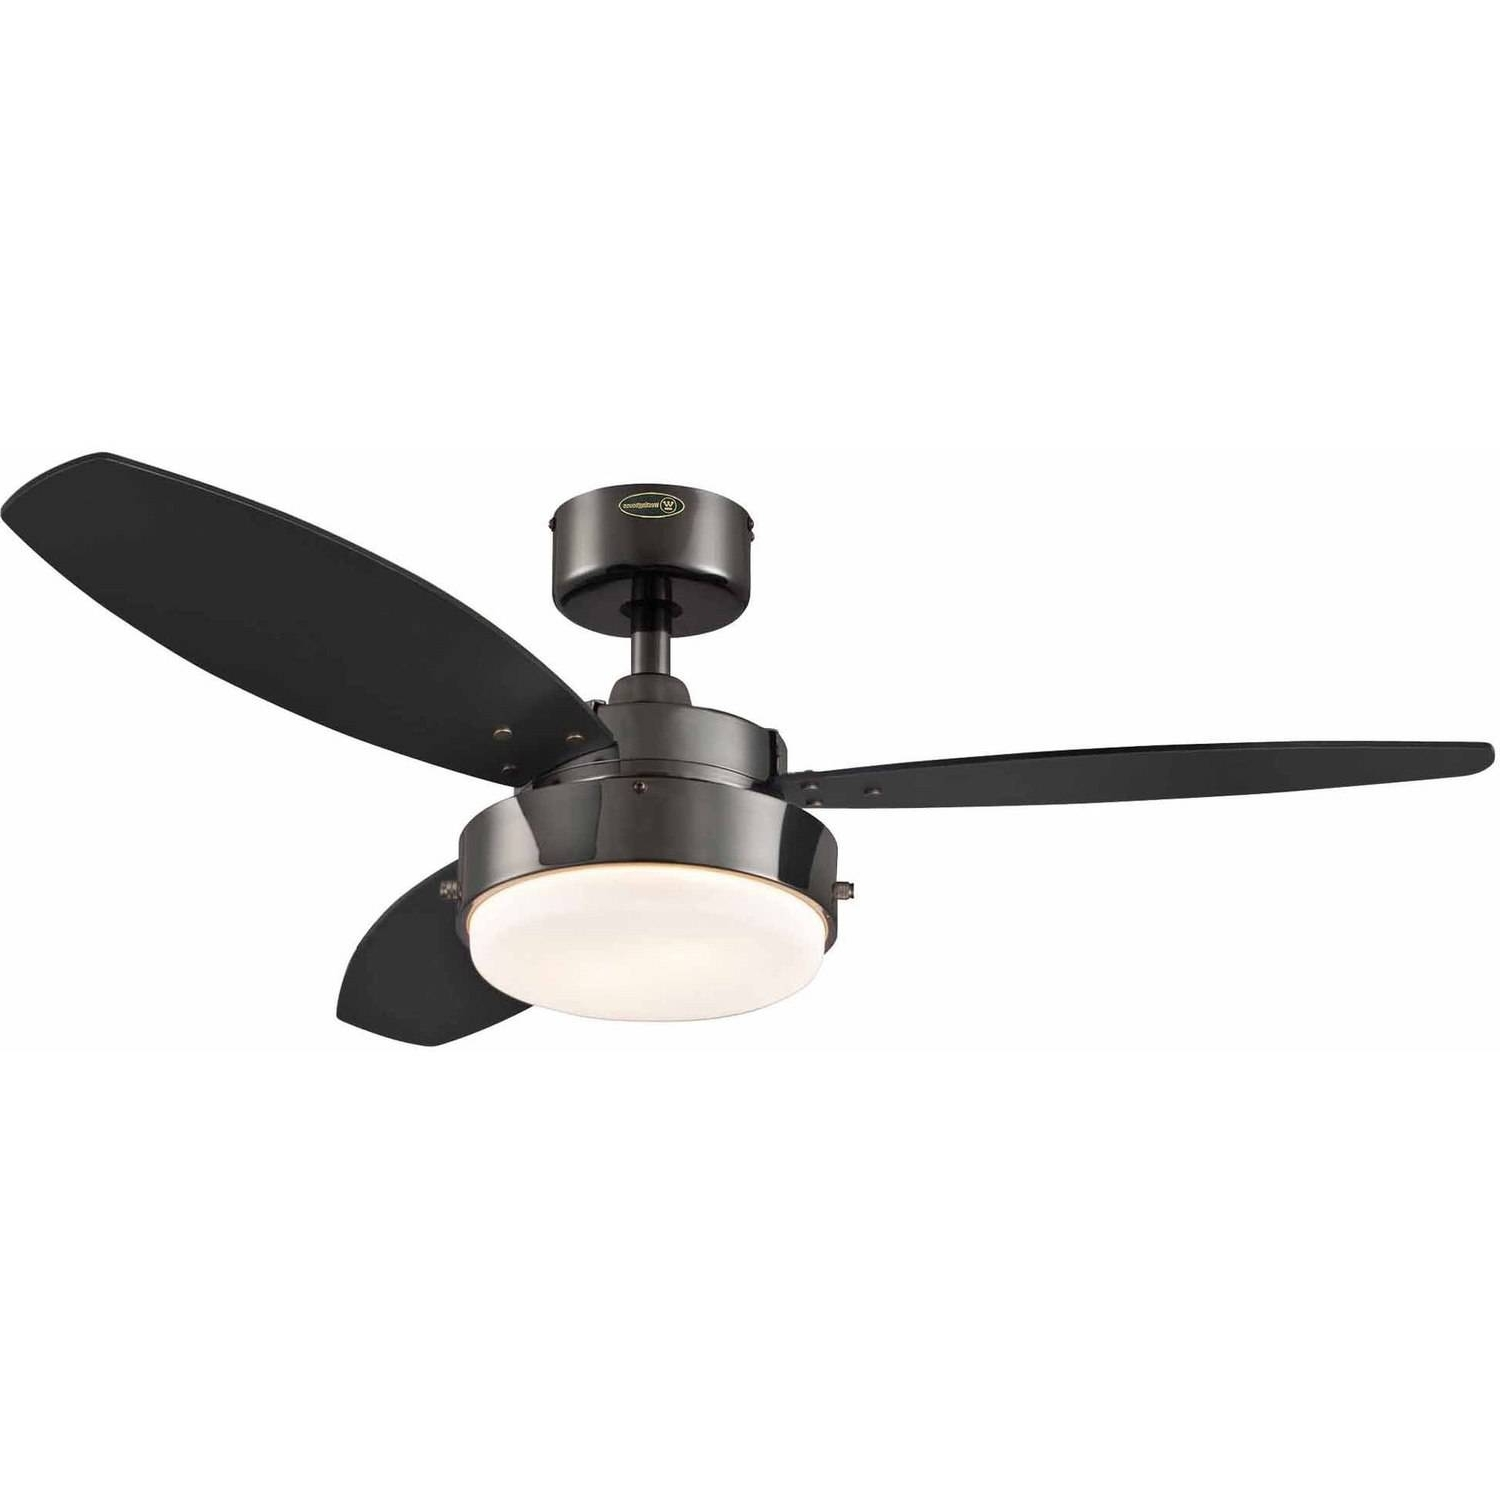 "36 Inch Outdoor Ceiling Fans Pertaining To Most Current Westinghouse 7876400 42"" Gun Metal 3 Blade Reversible Ceiling Fan (View 8 of 20)"